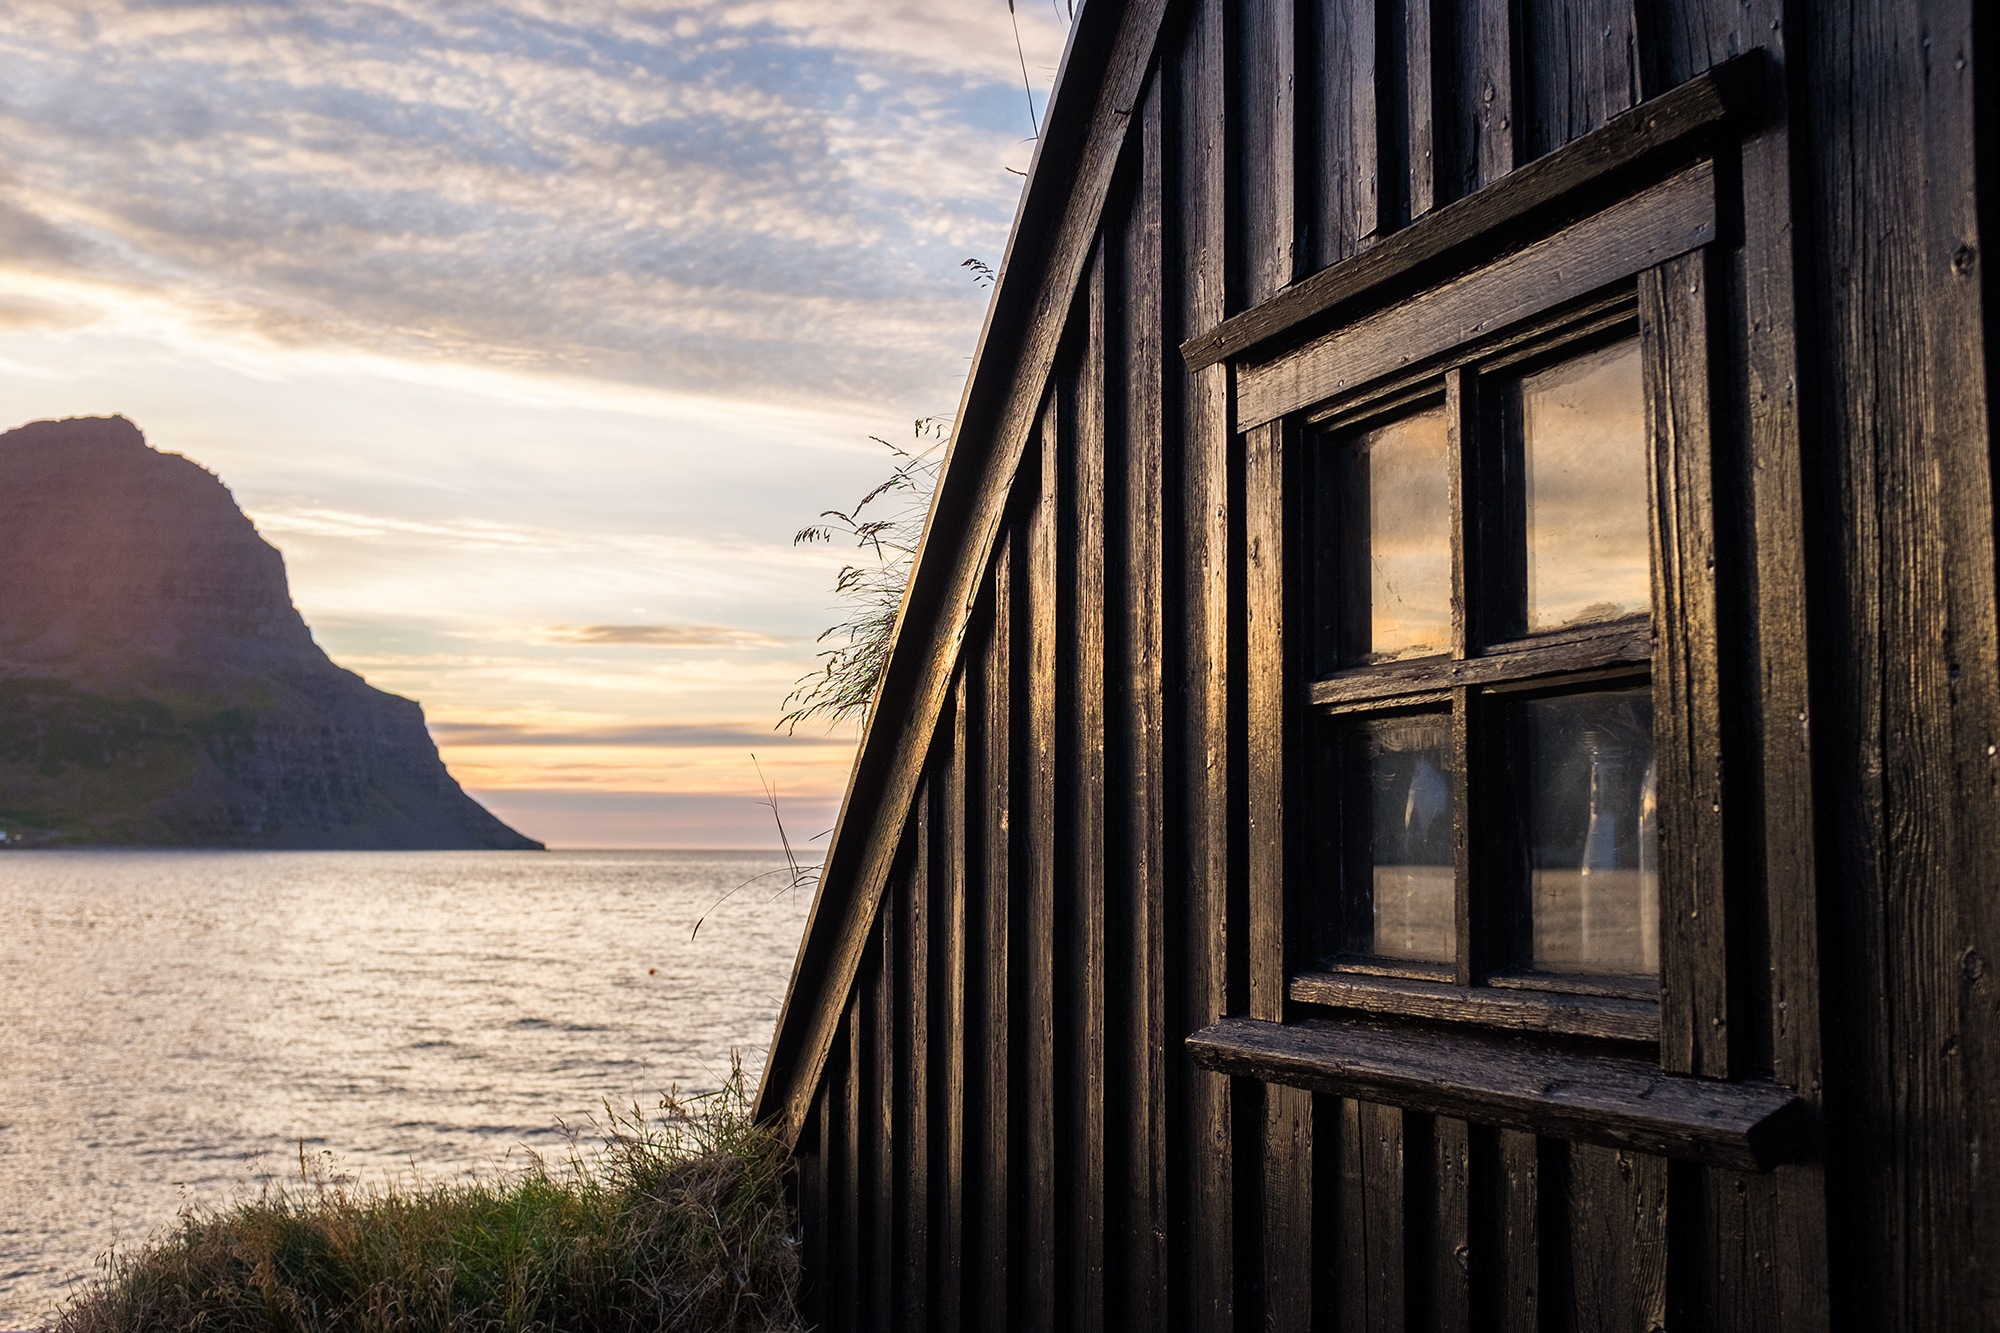 Iceland window by Giulio Annibali